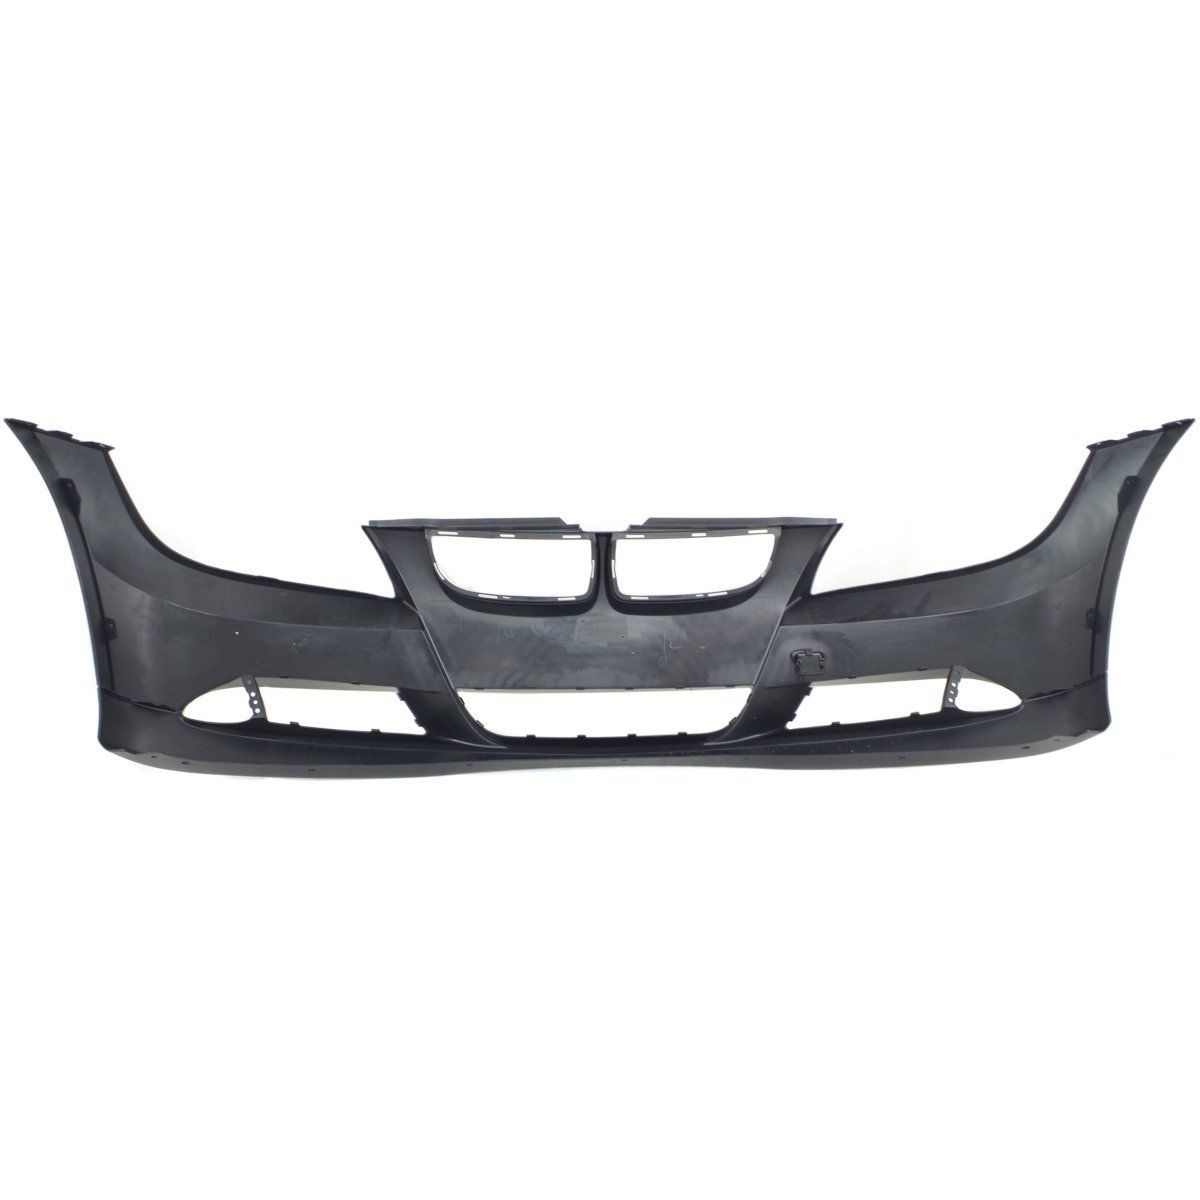 2006-2008 BMW 3-SERIES Front Bumper Cover 4dr sedan/wagon  w/o pk distance control  w/o headlamp washer Painted to Match